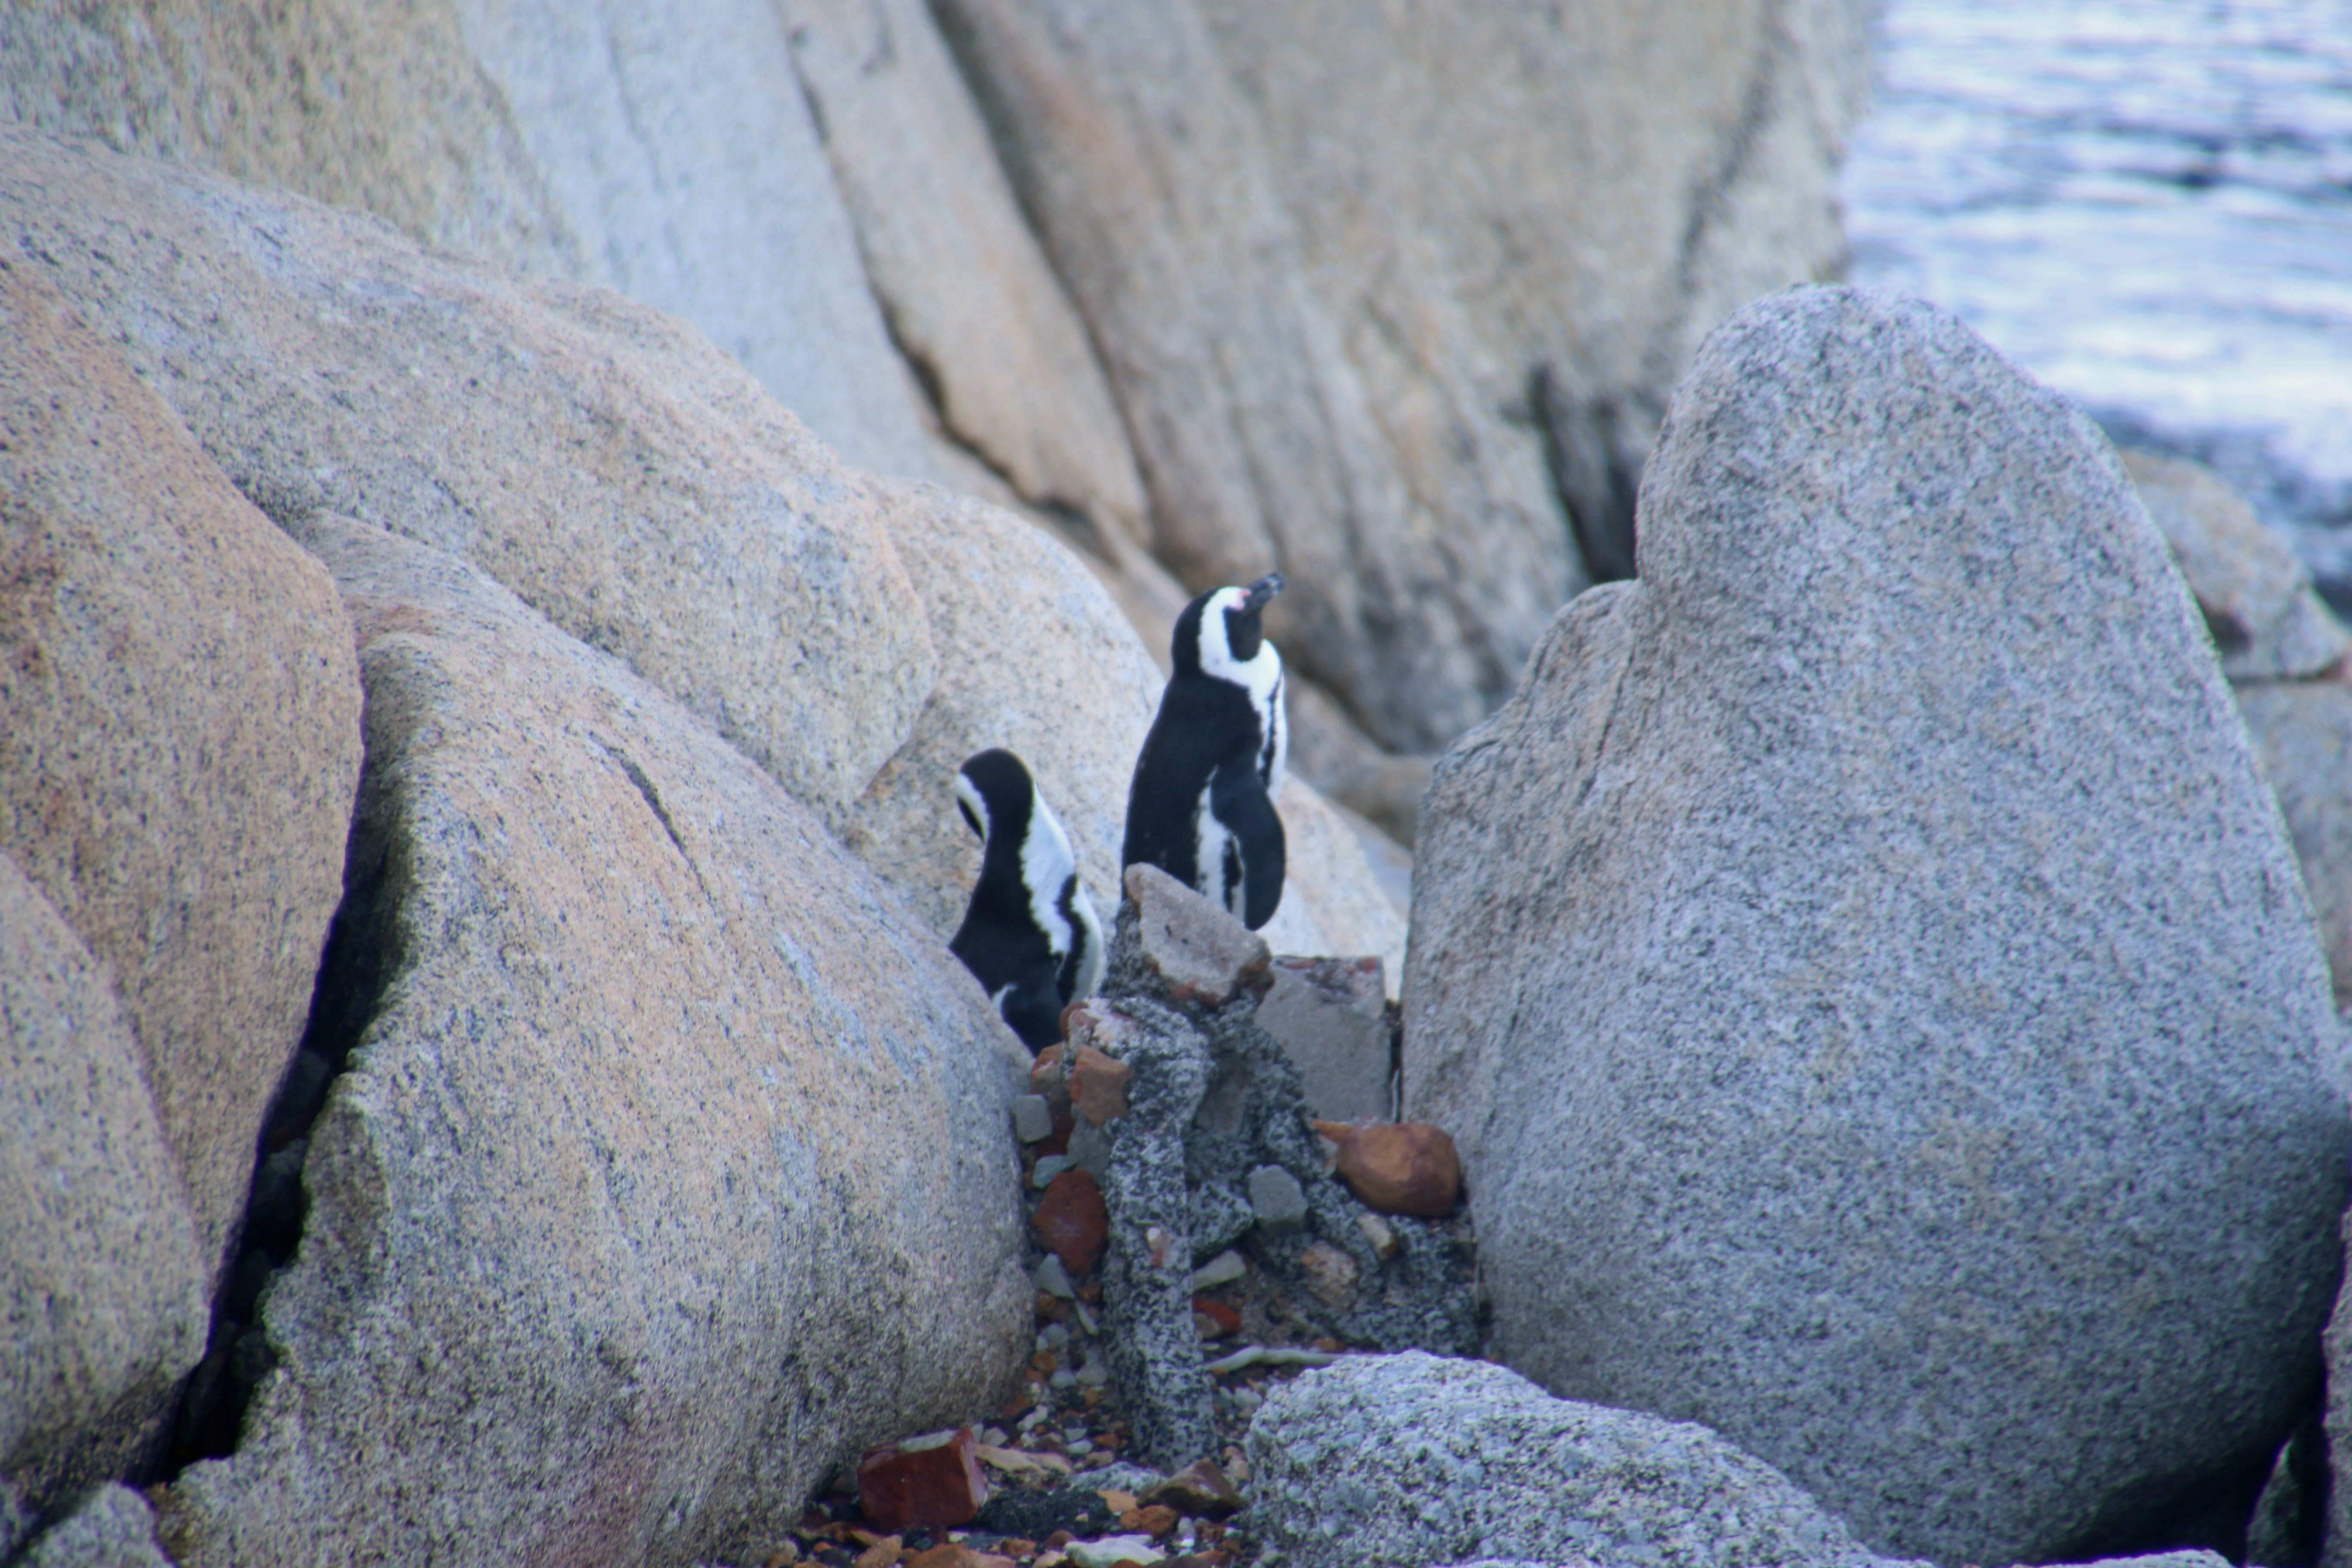 Two penguins in the rocks photo